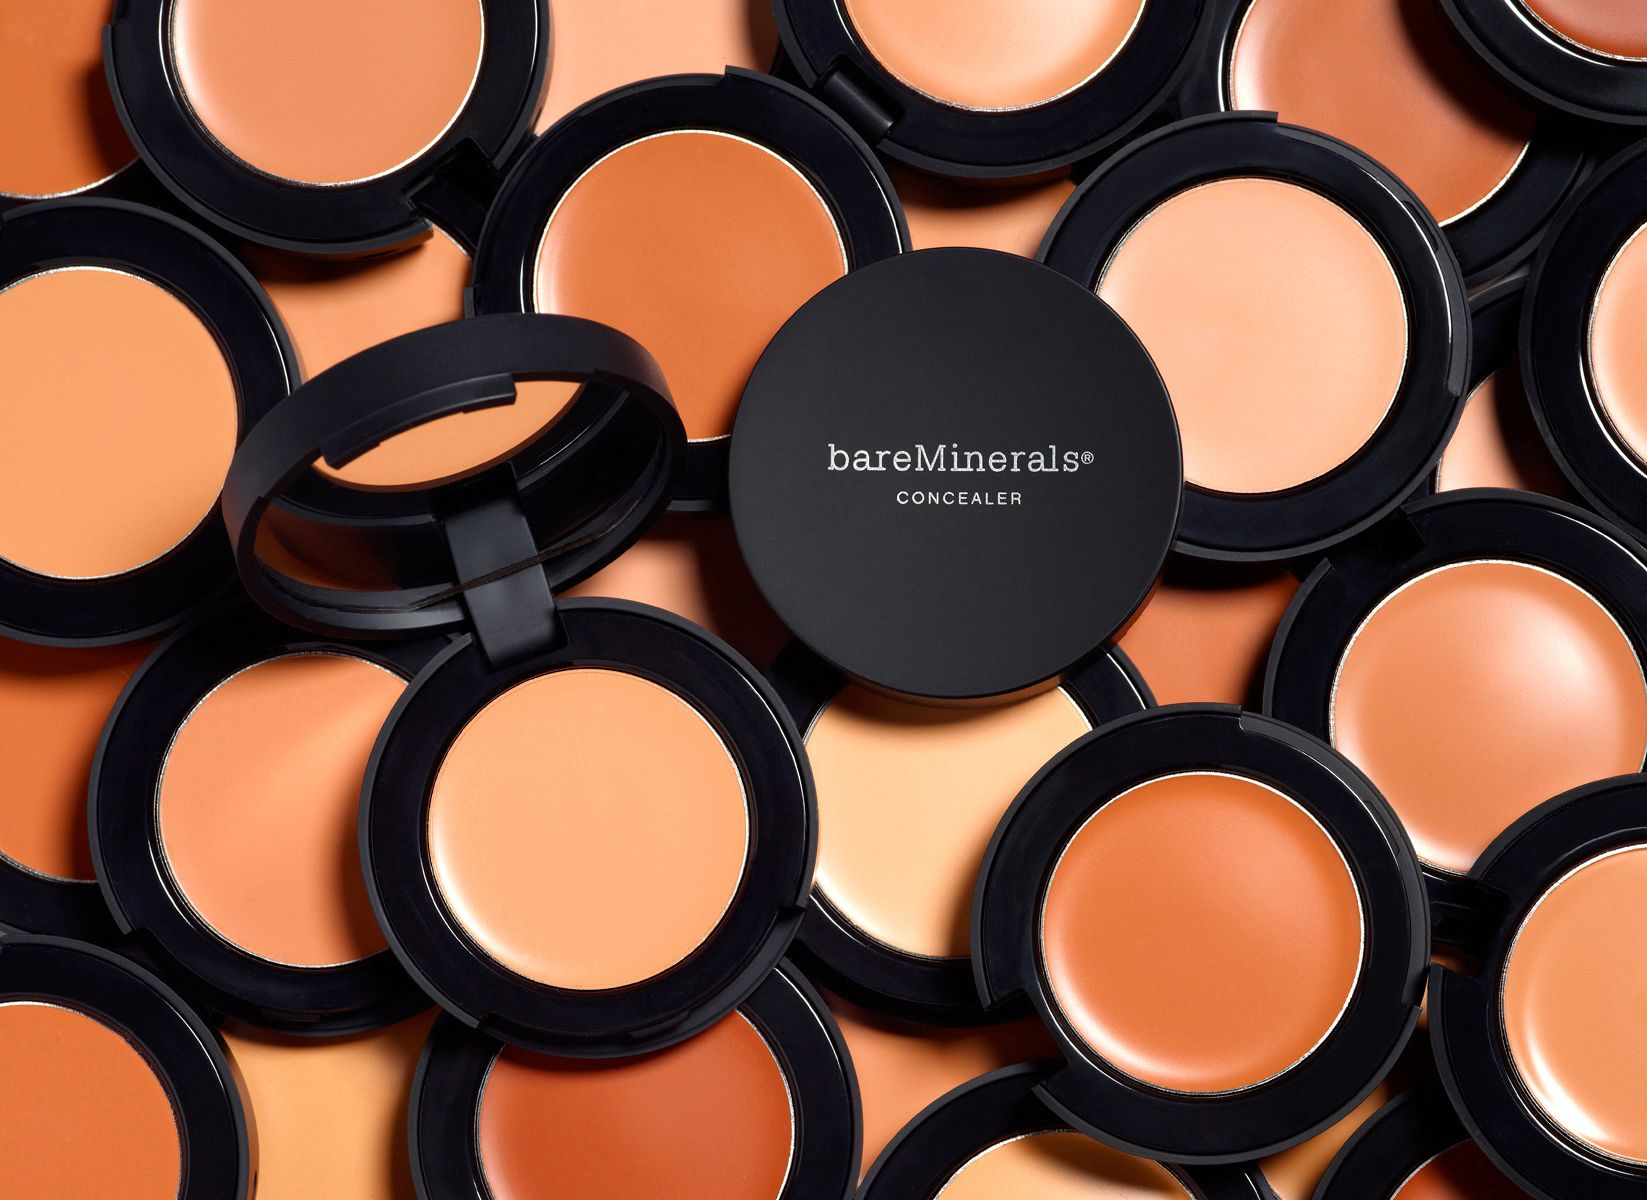 1concealer_2_hudson_cuneo_photography_still_life_beauty_san_francisco_makeup_cosmetics.jpg